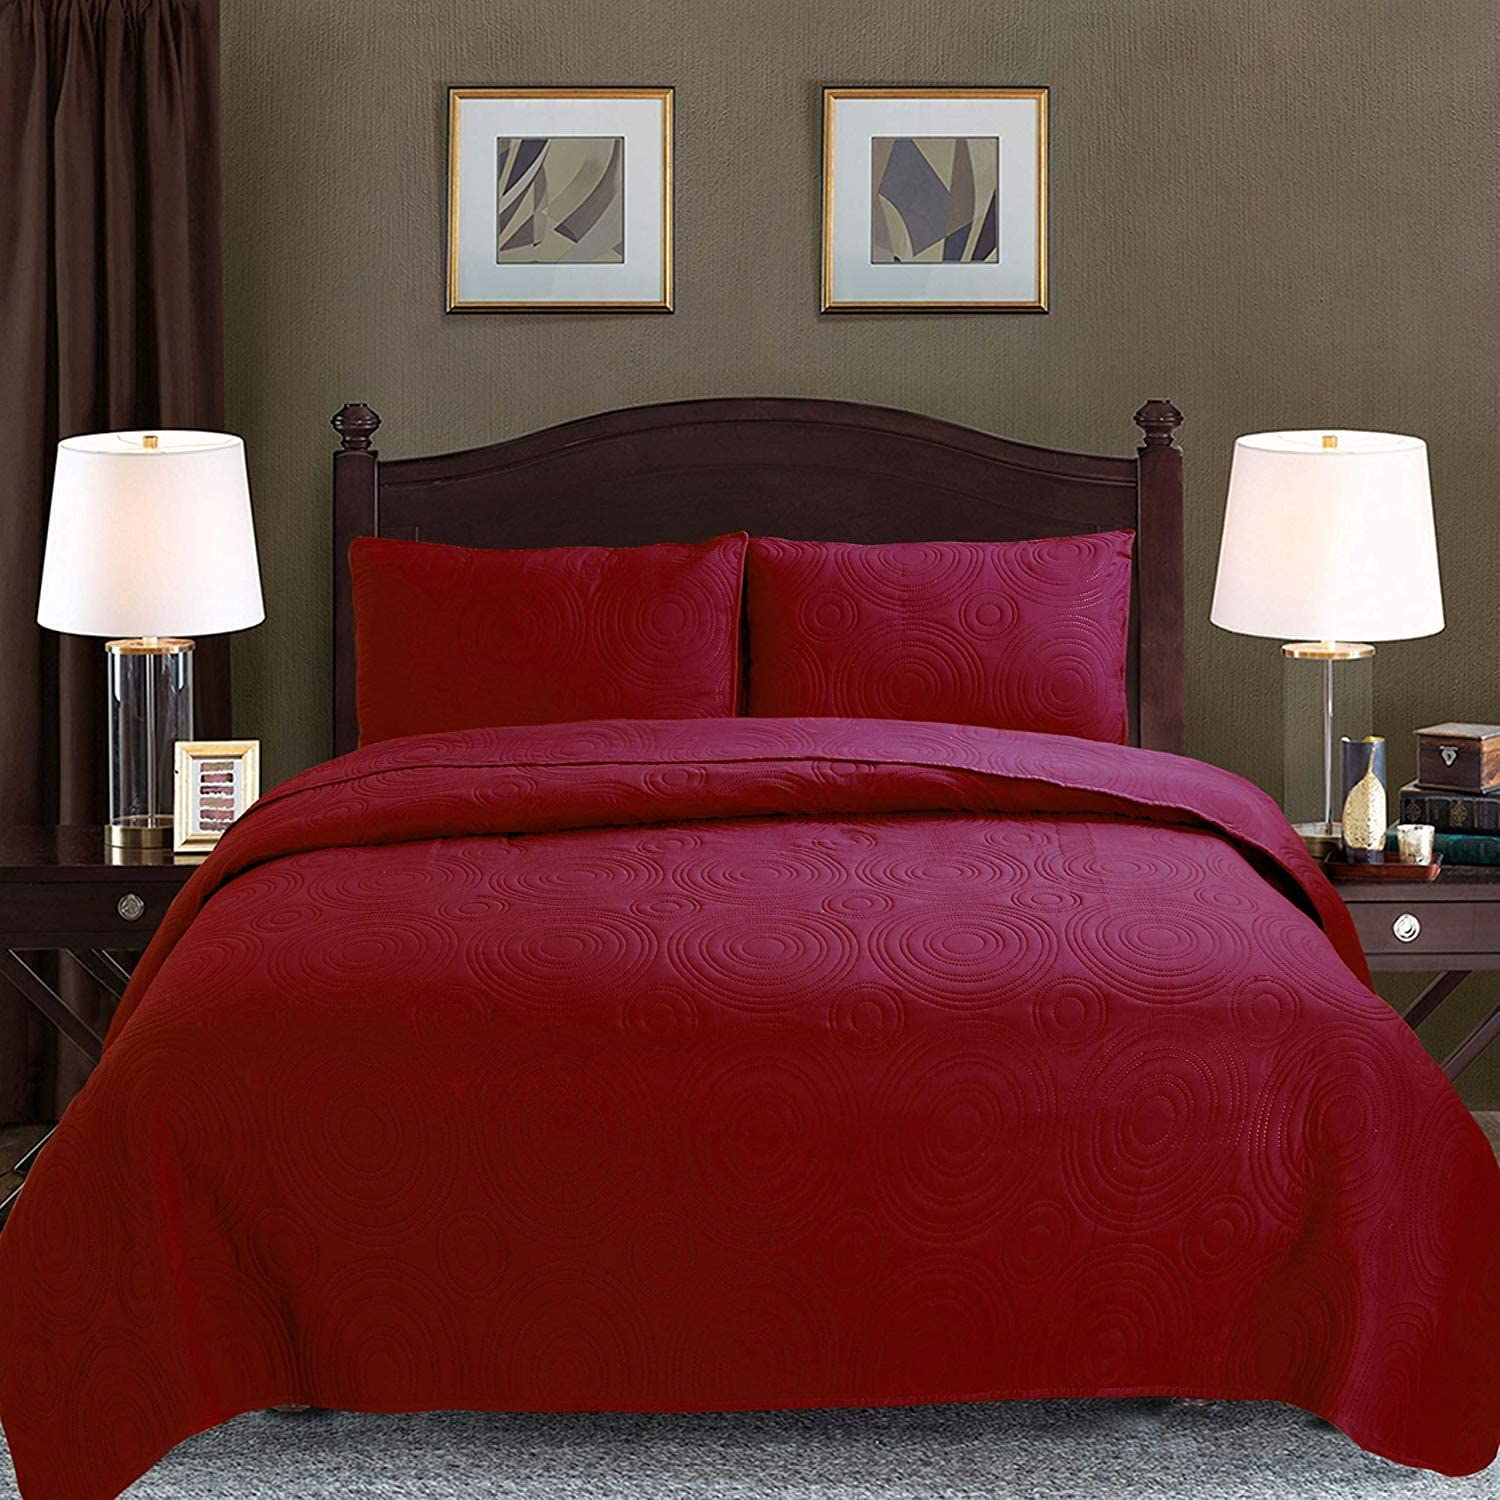 "Majiija Oversized 3 Piece Embossed Quilted Bedspread Coverlet Set 106""x118"" King, Burgundy"